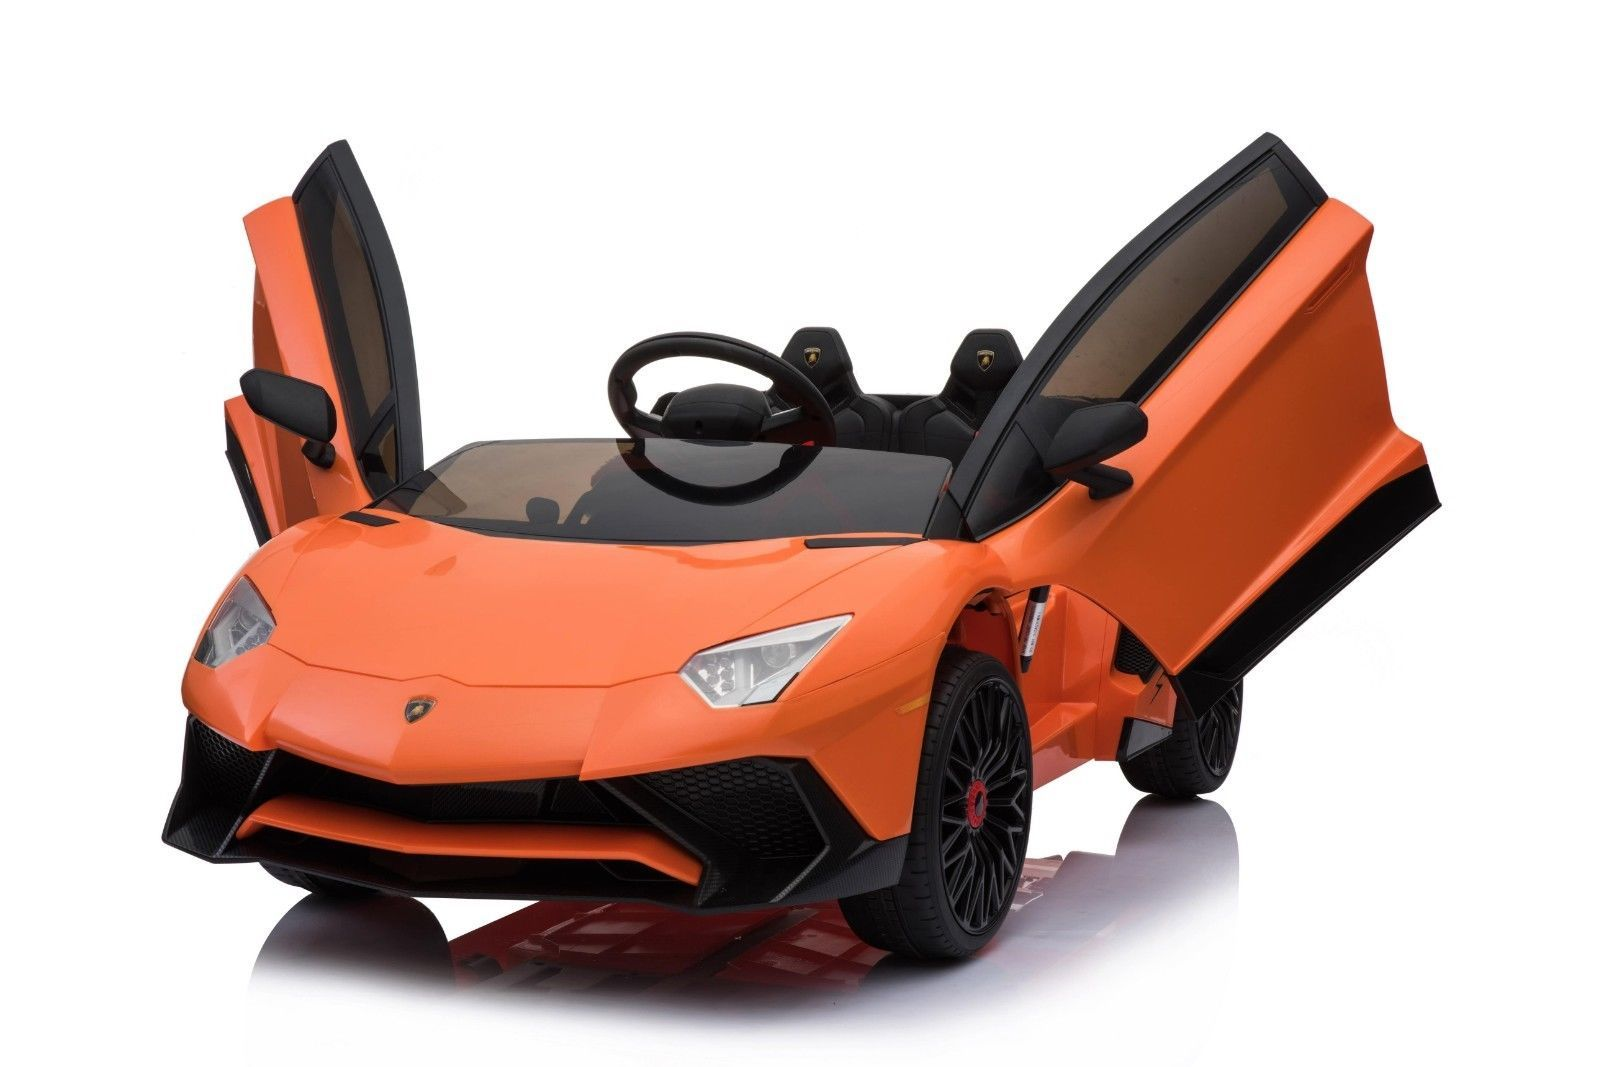 2c14511ad042 Sport Limited Upgraded Edition Lamborghini SV 12v Kids Ride On Car with  Remote Control - Walmart.com